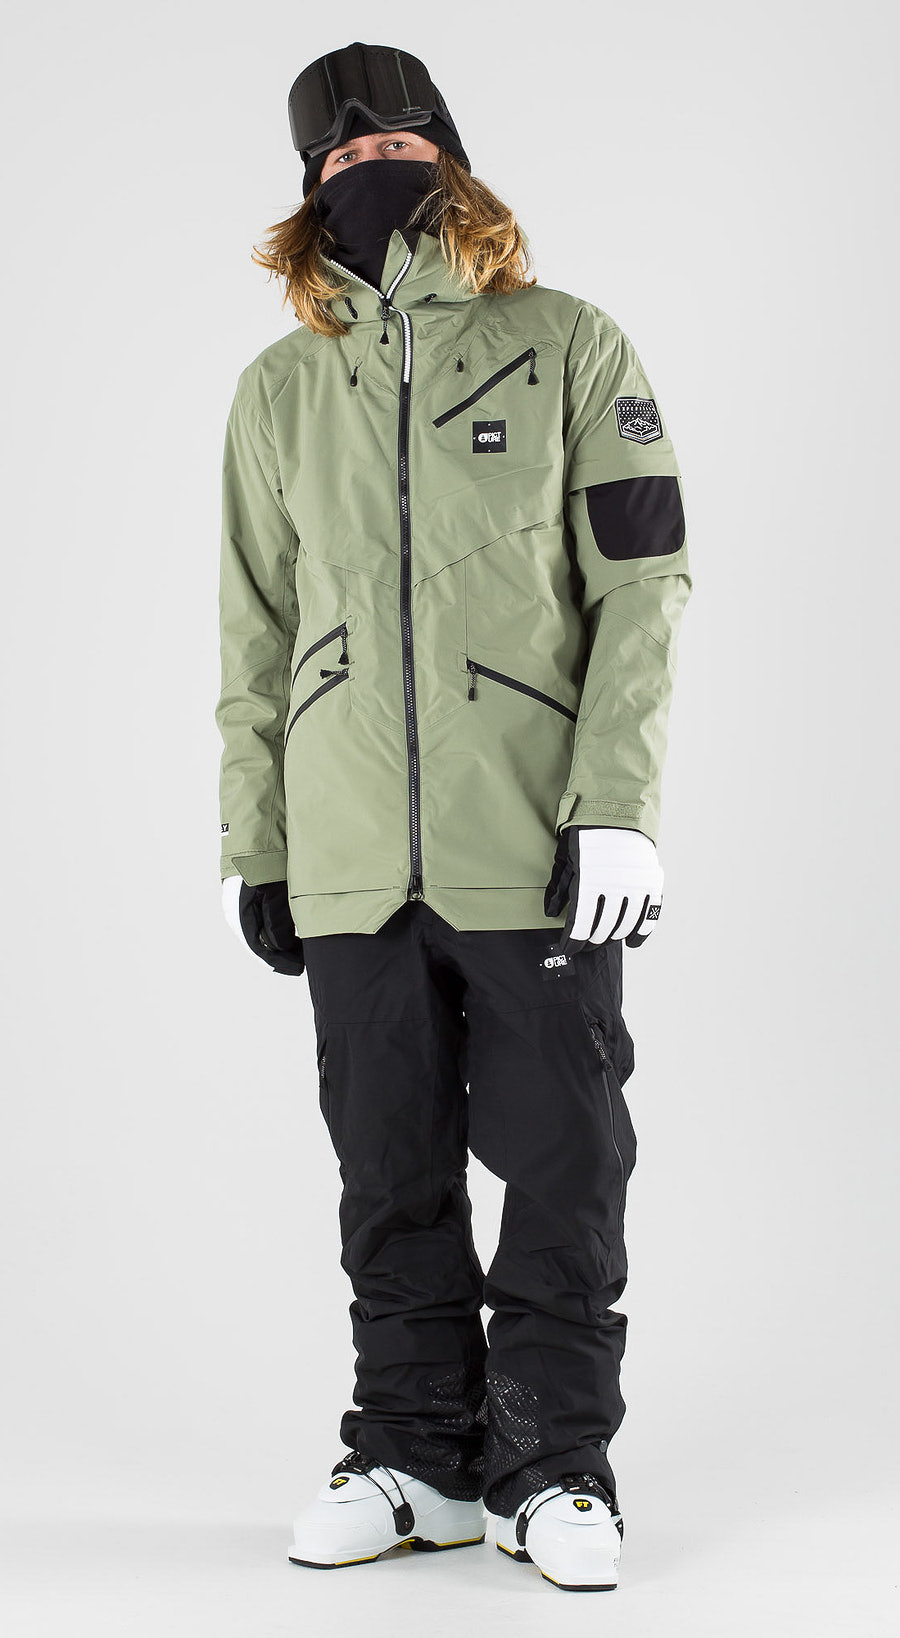 Picture Zephir Army Green Ski clothing Multi